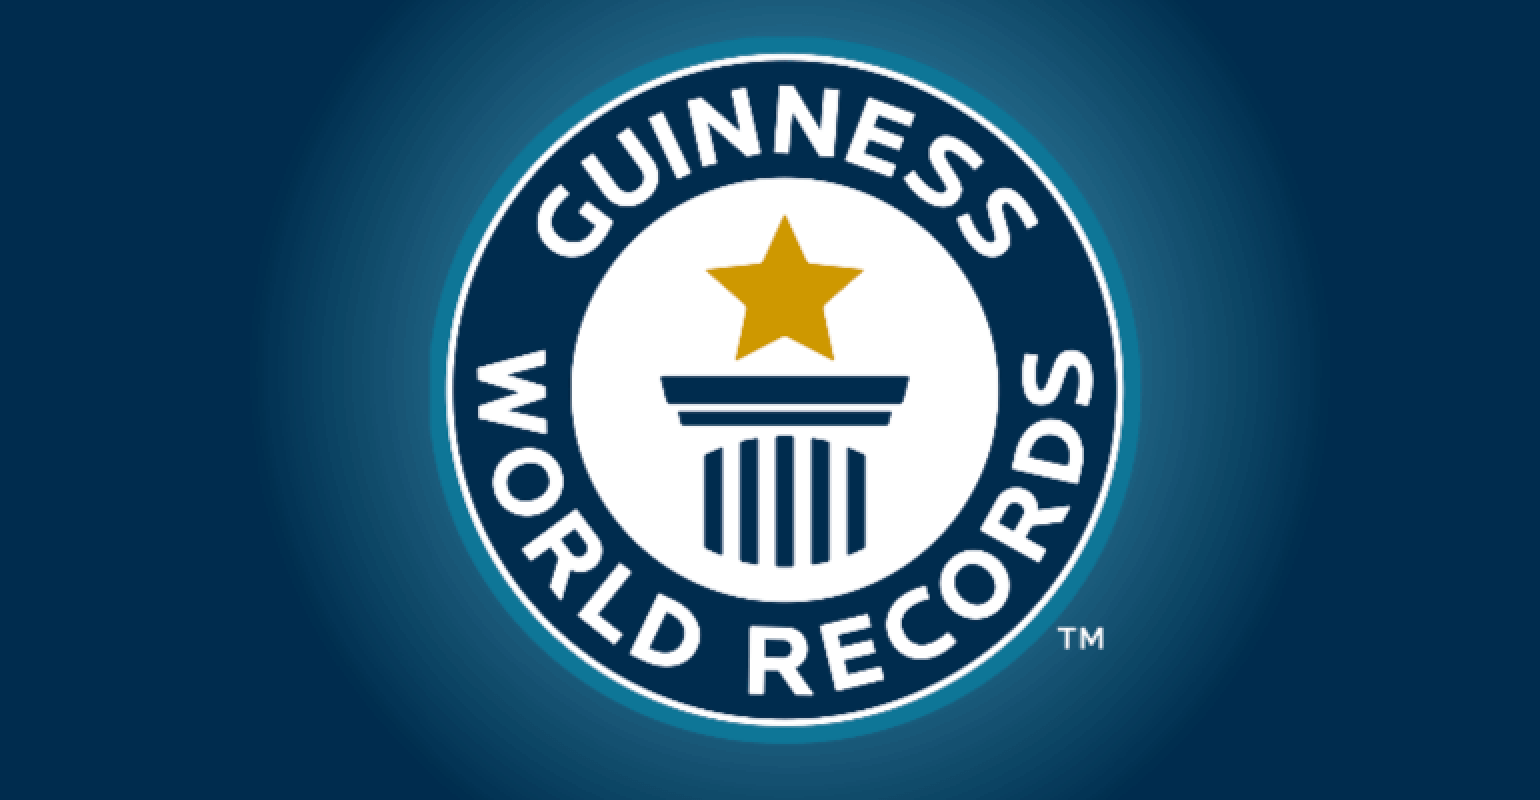 Reaching for the stars: Poland's weirdest Guinness World Records